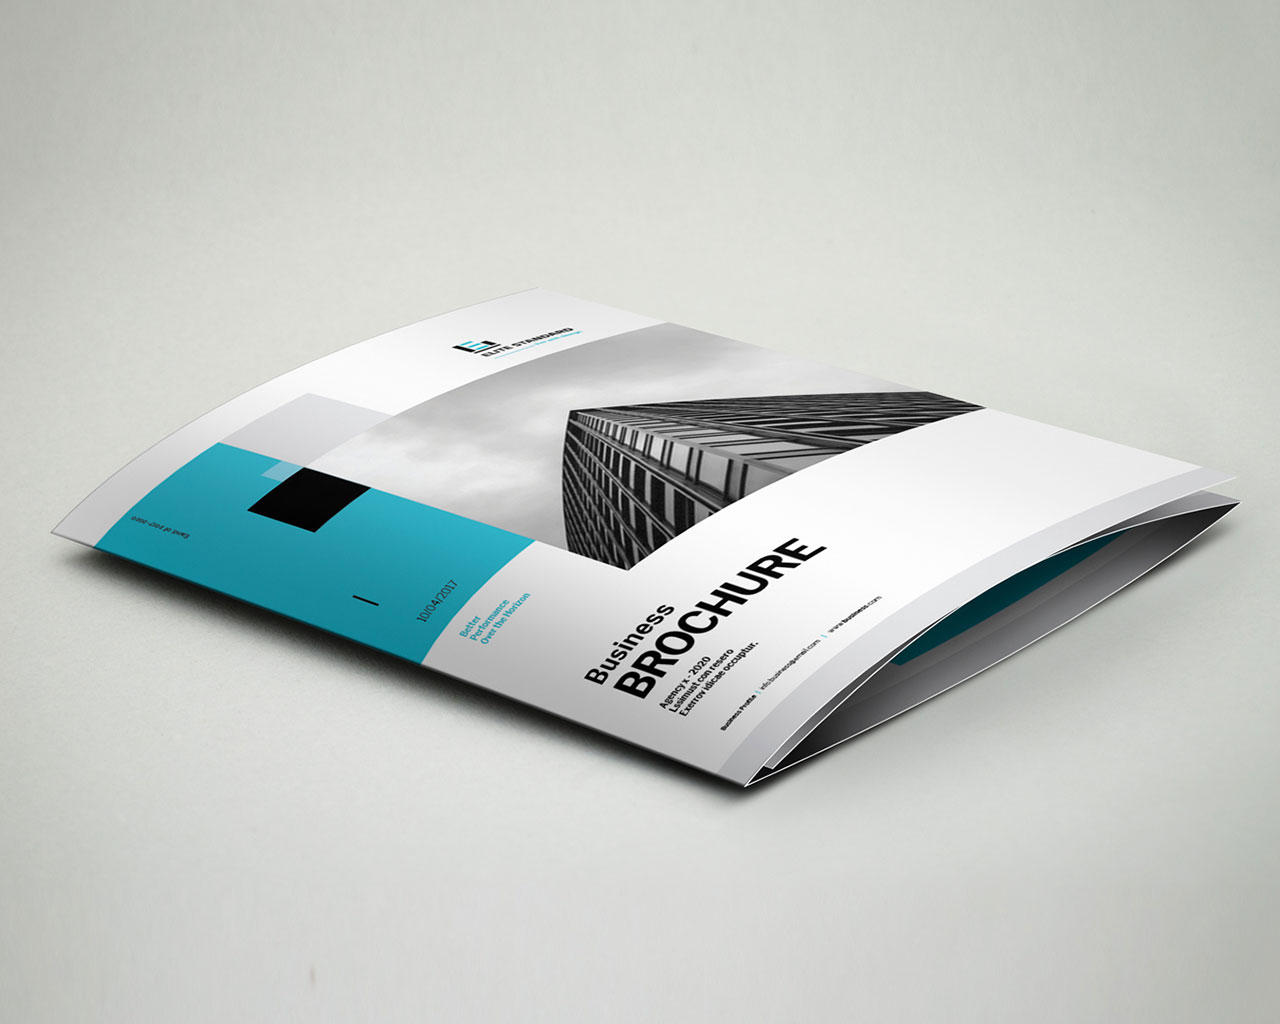 3xA4 Large Trifold Brochure Design by ashuras_sharif - 105826